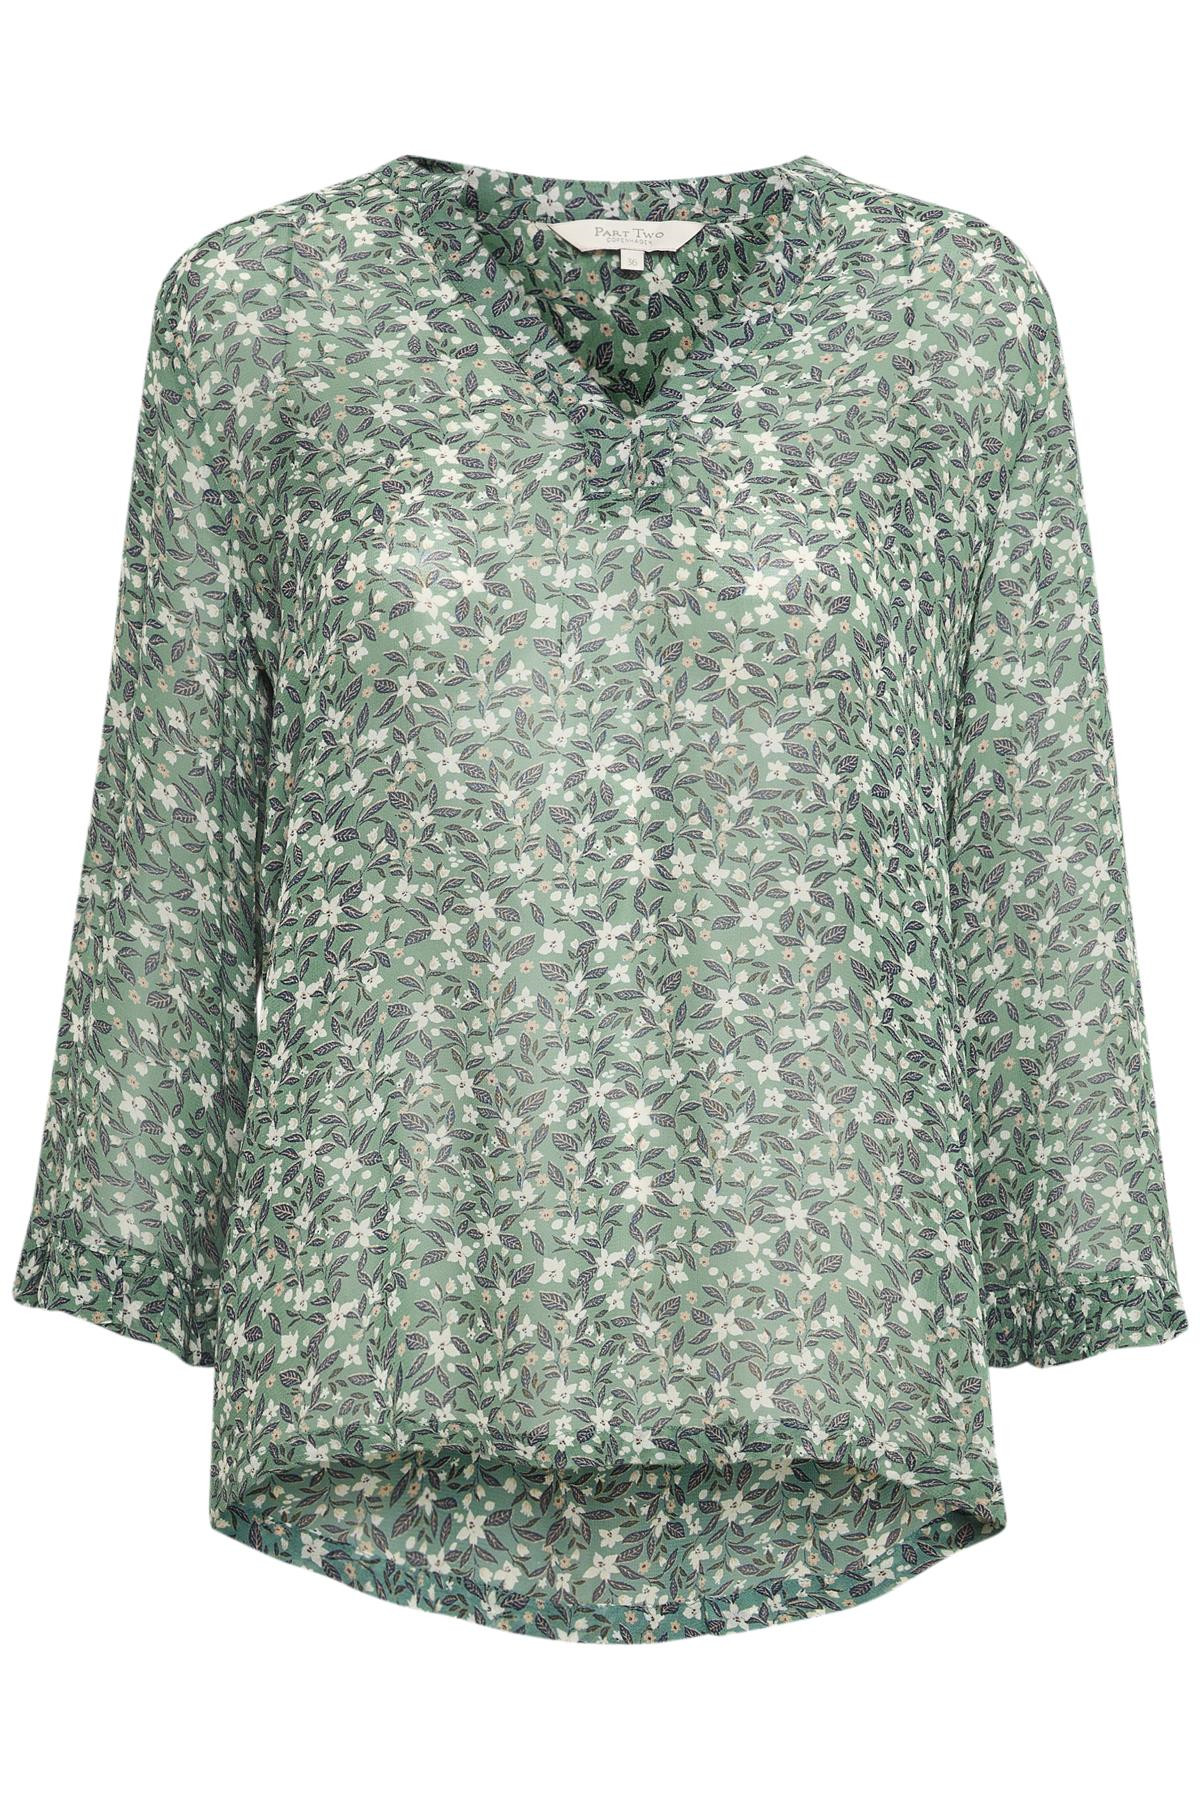 Image of   PART TWO BITTA BLUSE 30304965 34215 (Mini Flower 34215, 34)